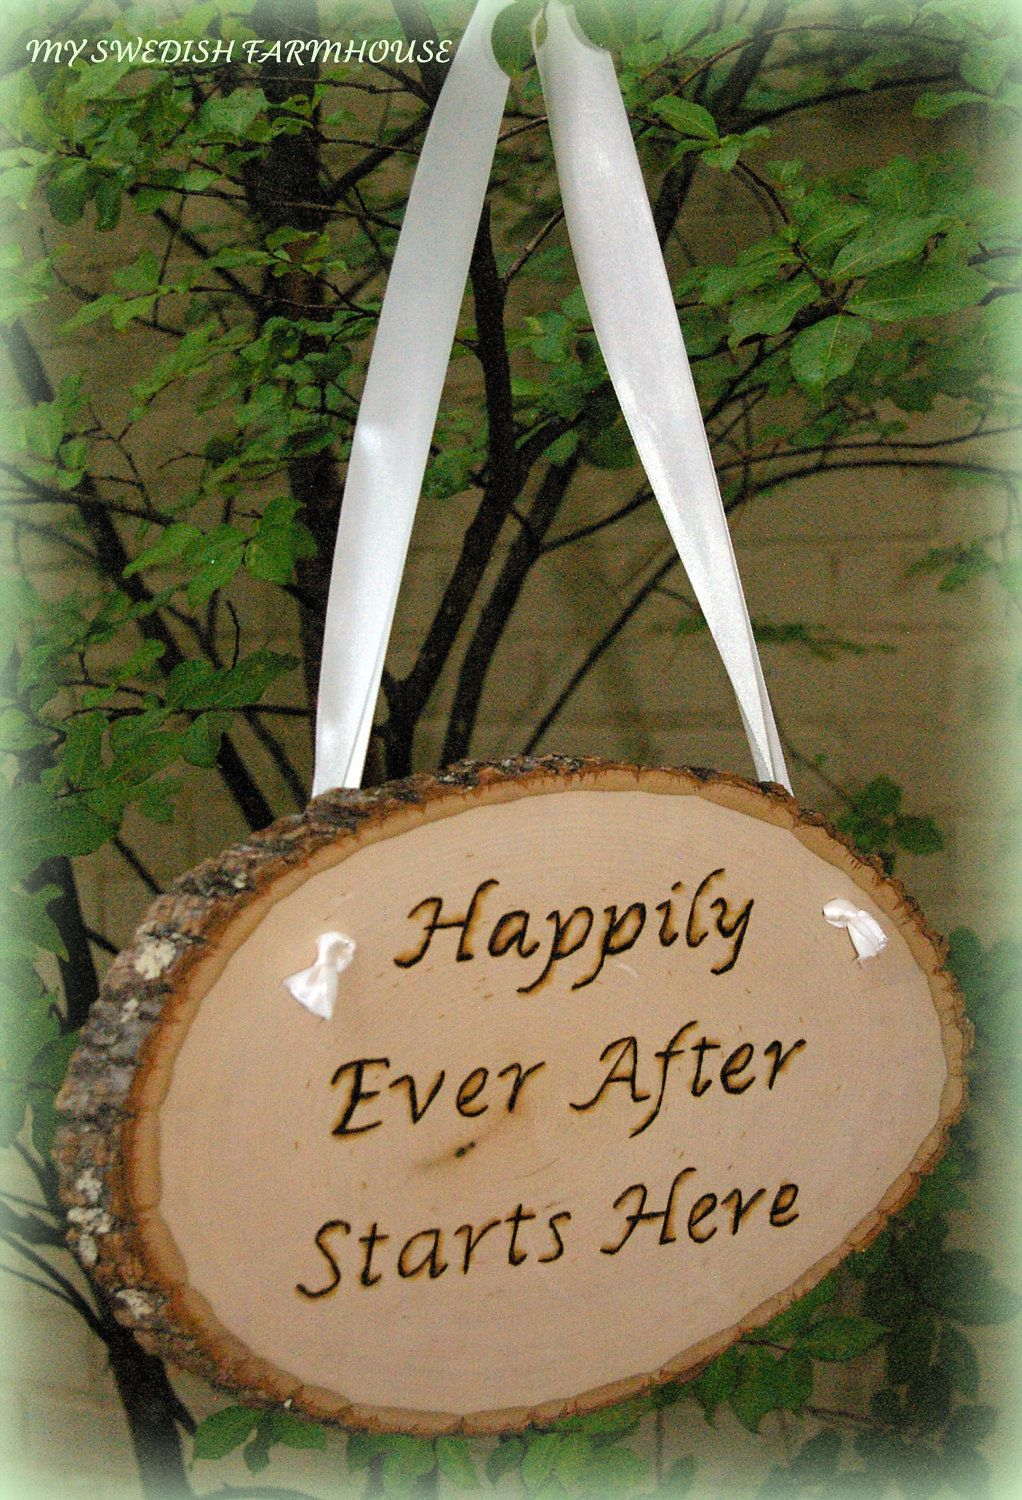 Happily Ever After Starts Here Large Wood by MinSvenskaLandgard